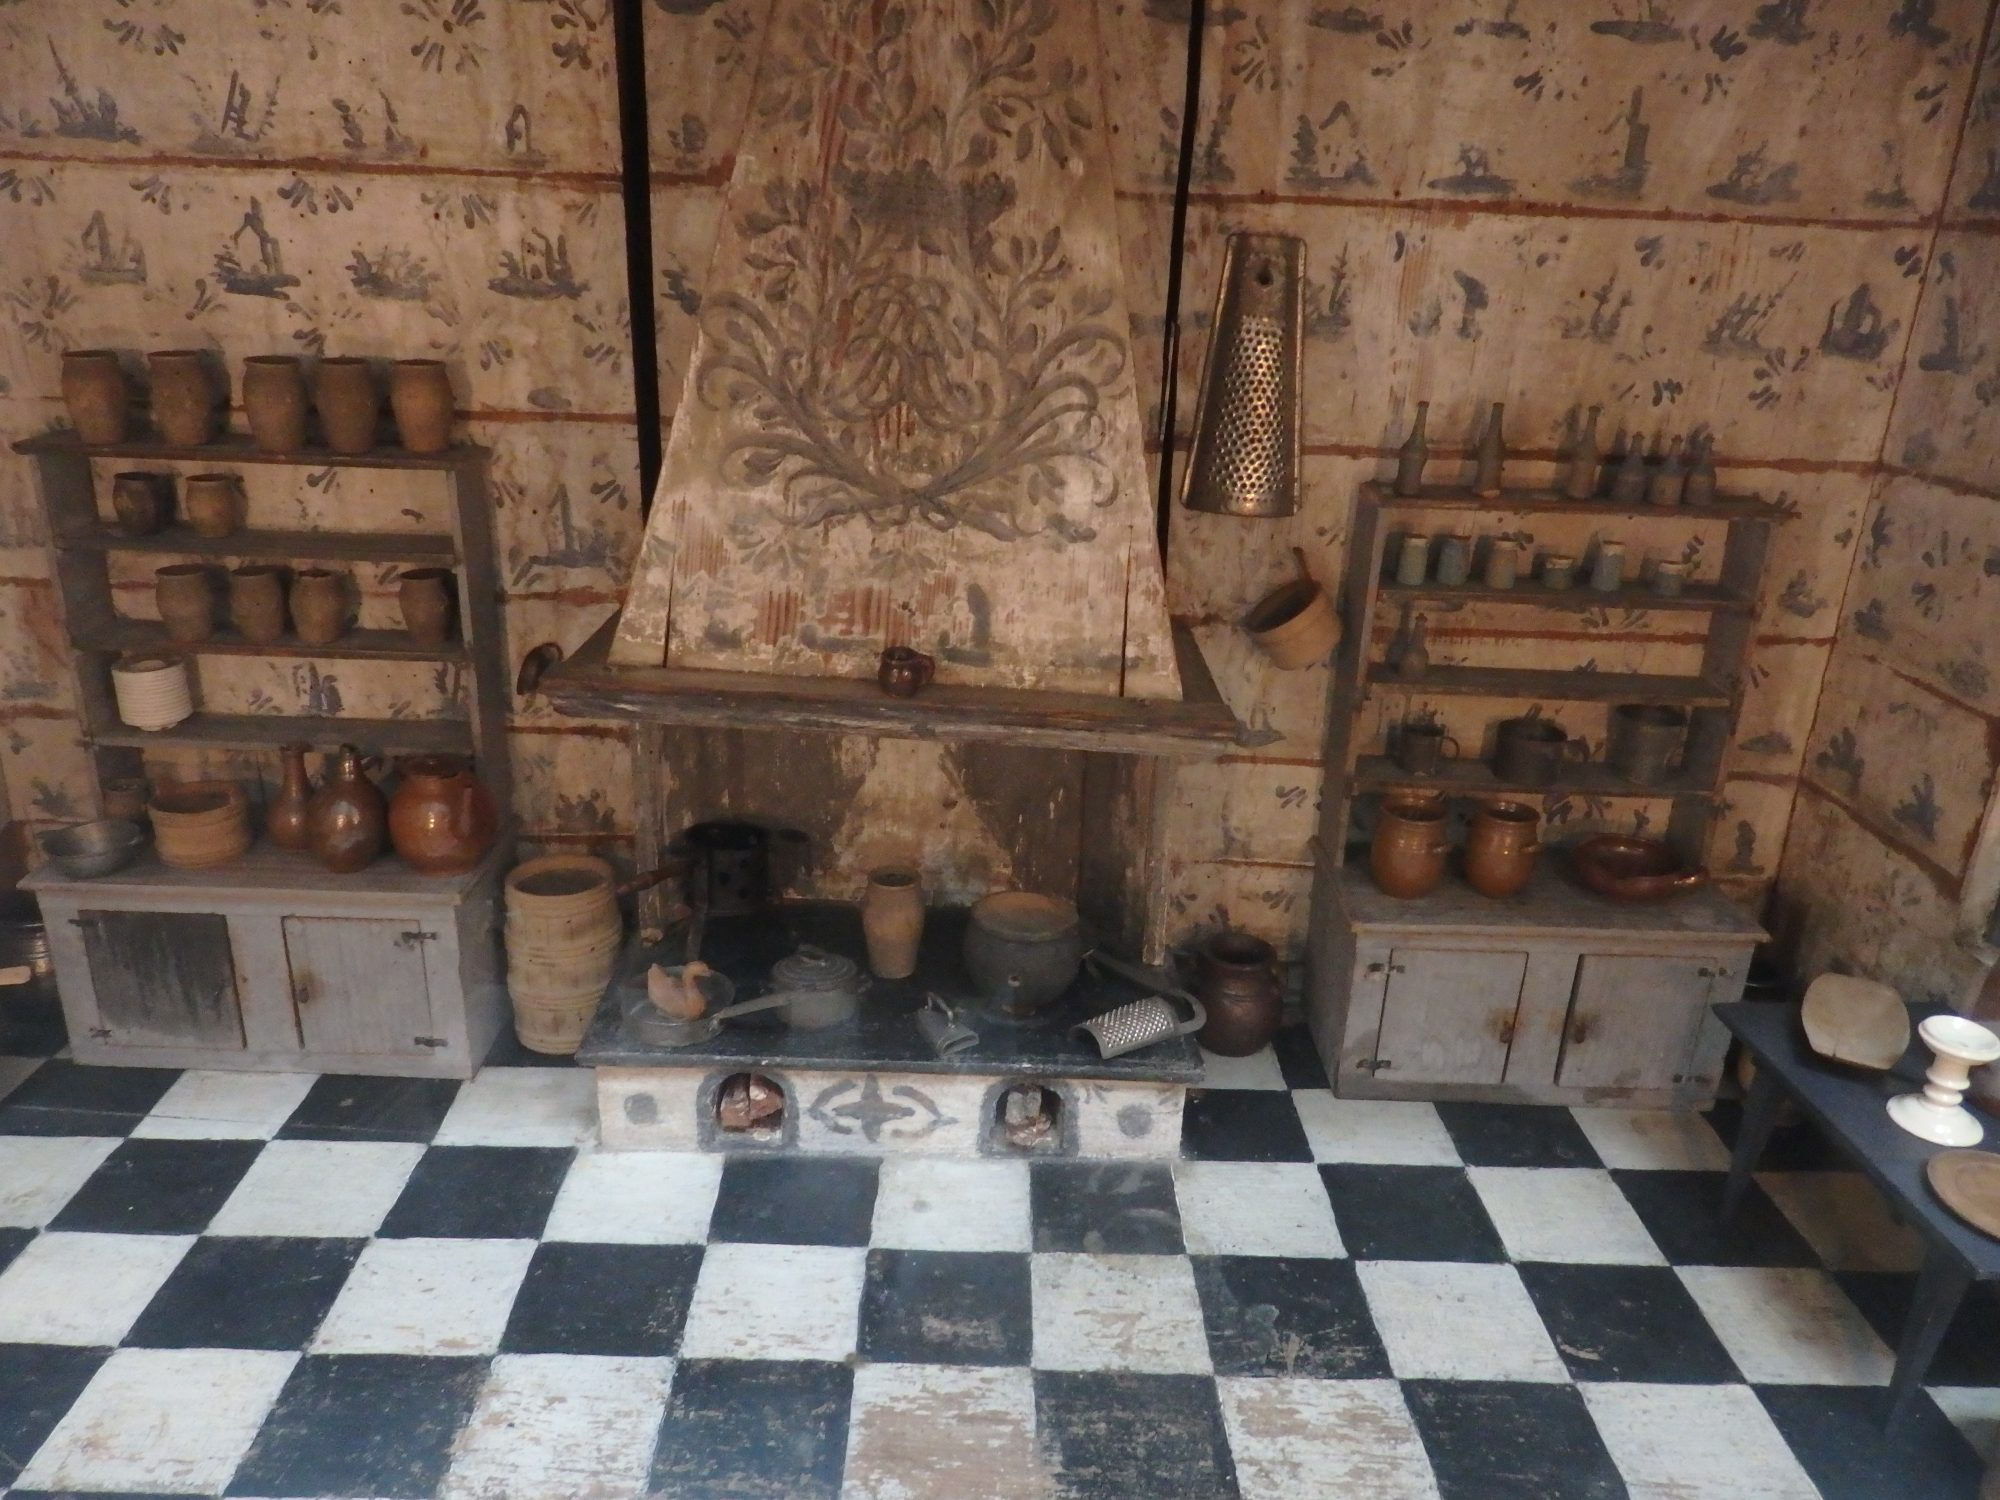 The kitchen from one of the dollhouses in the Nordic Museum, Stockholm, Sweden